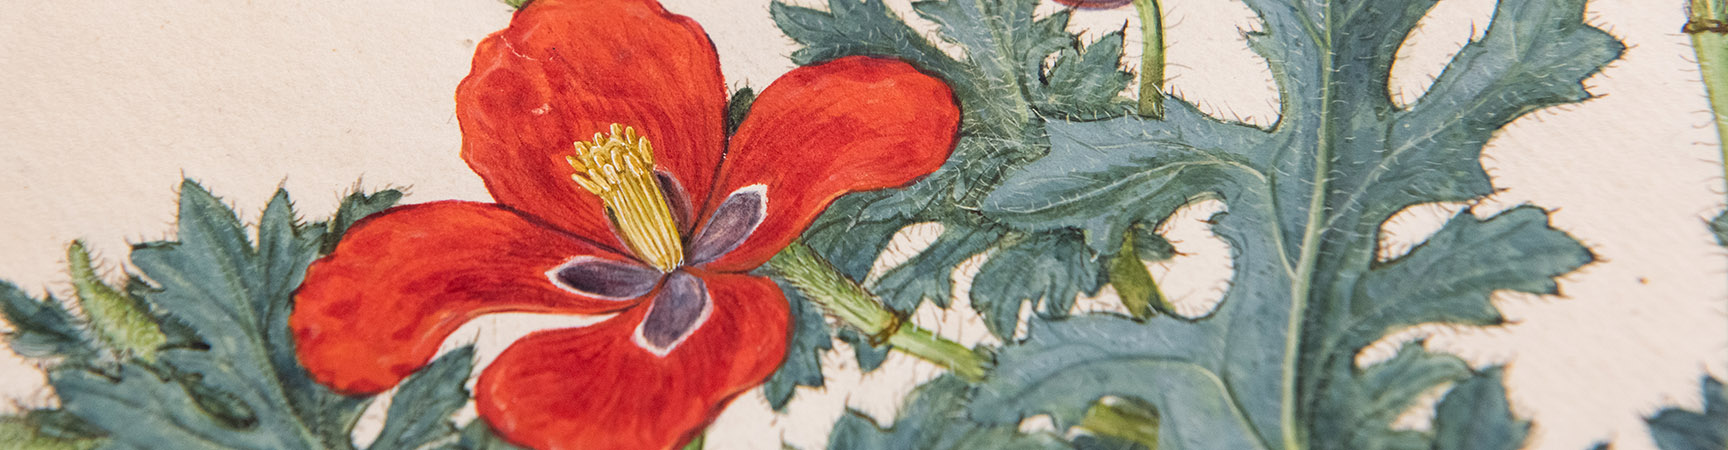 A detail of a painted flower - with red petals and a green stem